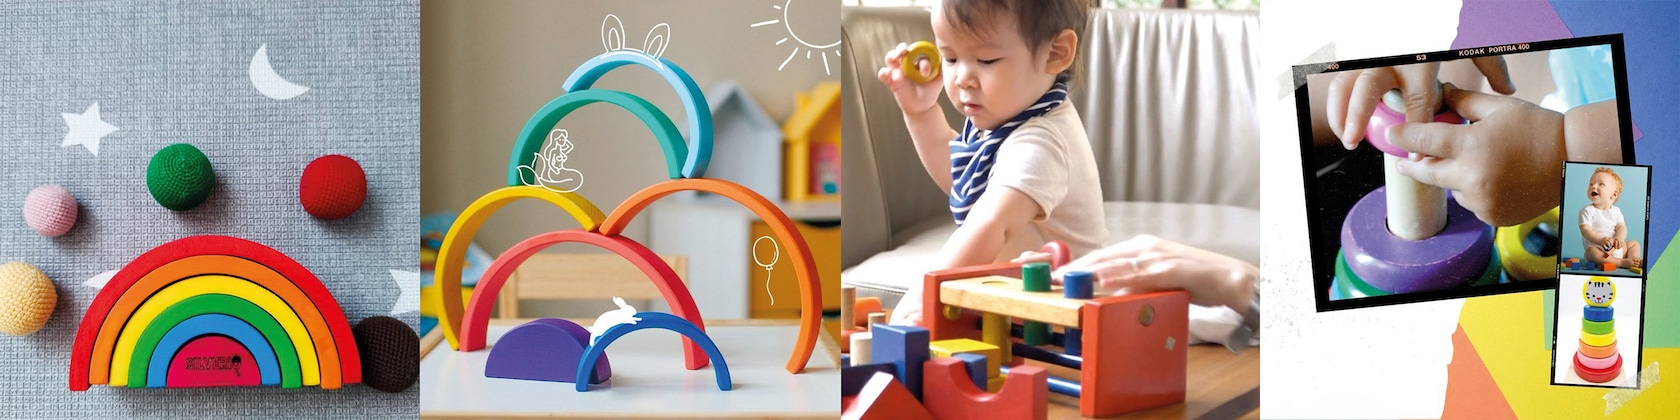 Montessori Toy Learning Toy Colorful Cat Tower Educational Toy Preschool Toddler Kids Colourful Roller Tower for Baby and Toddler